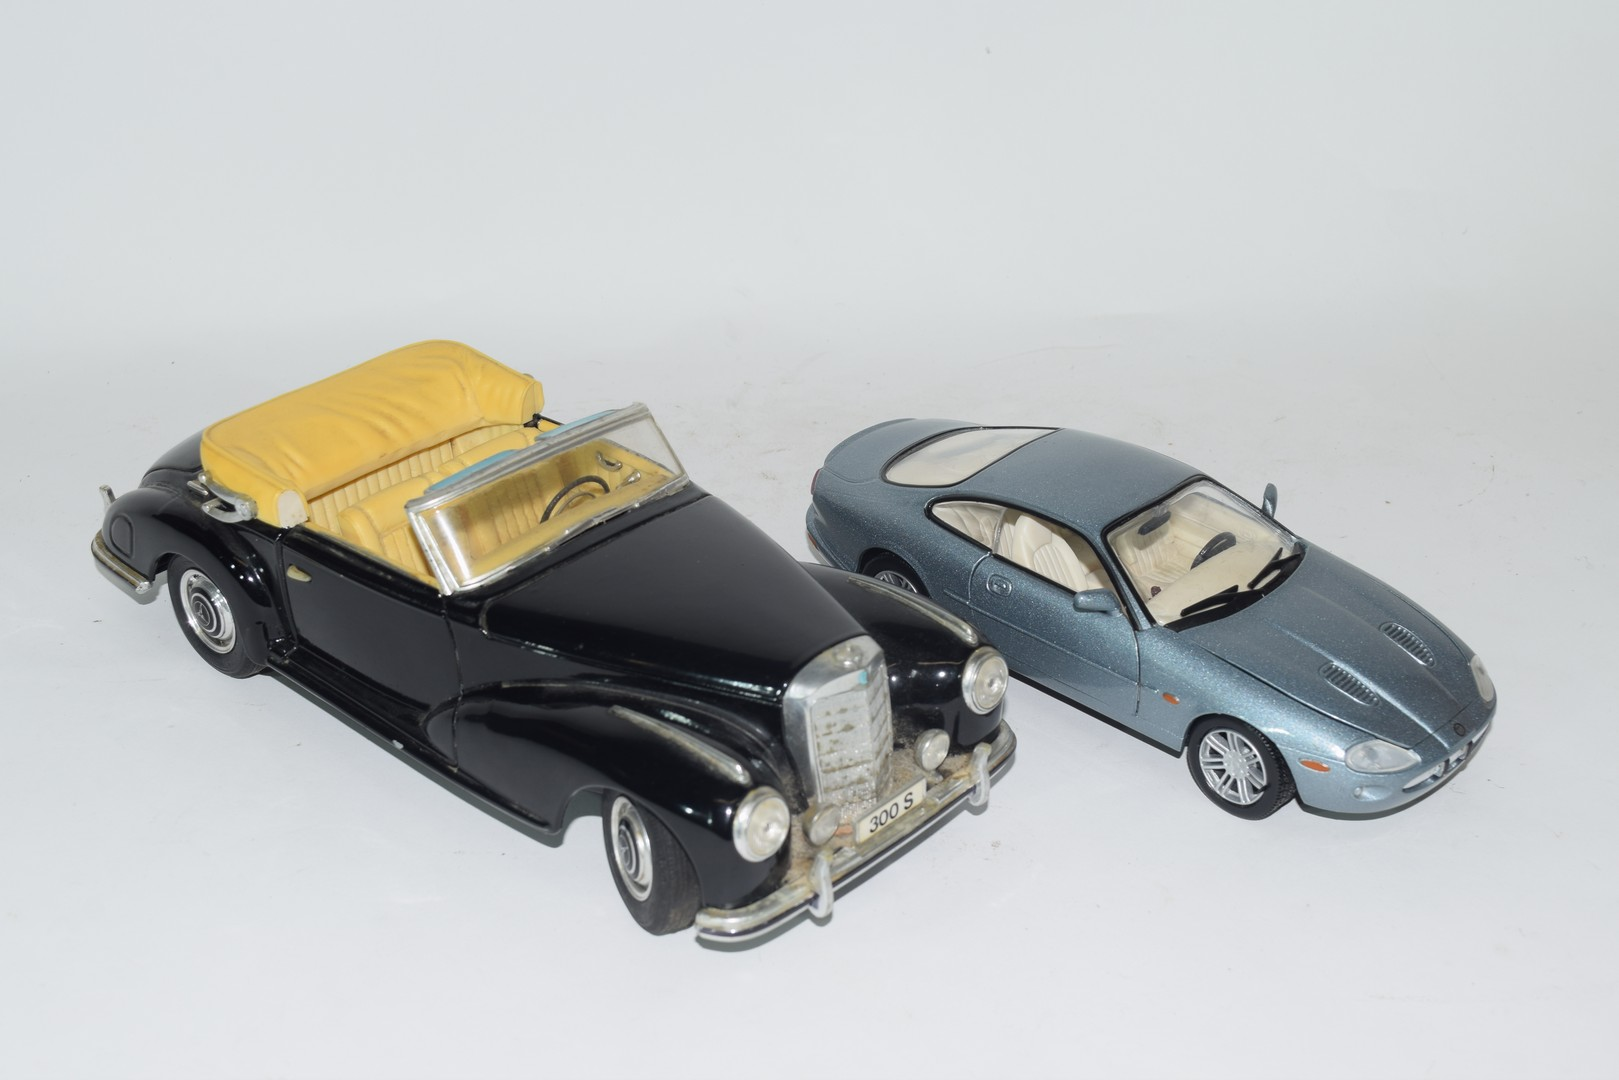 Maisto model of a Mercedes 300S 1955 - Image 2 of 2